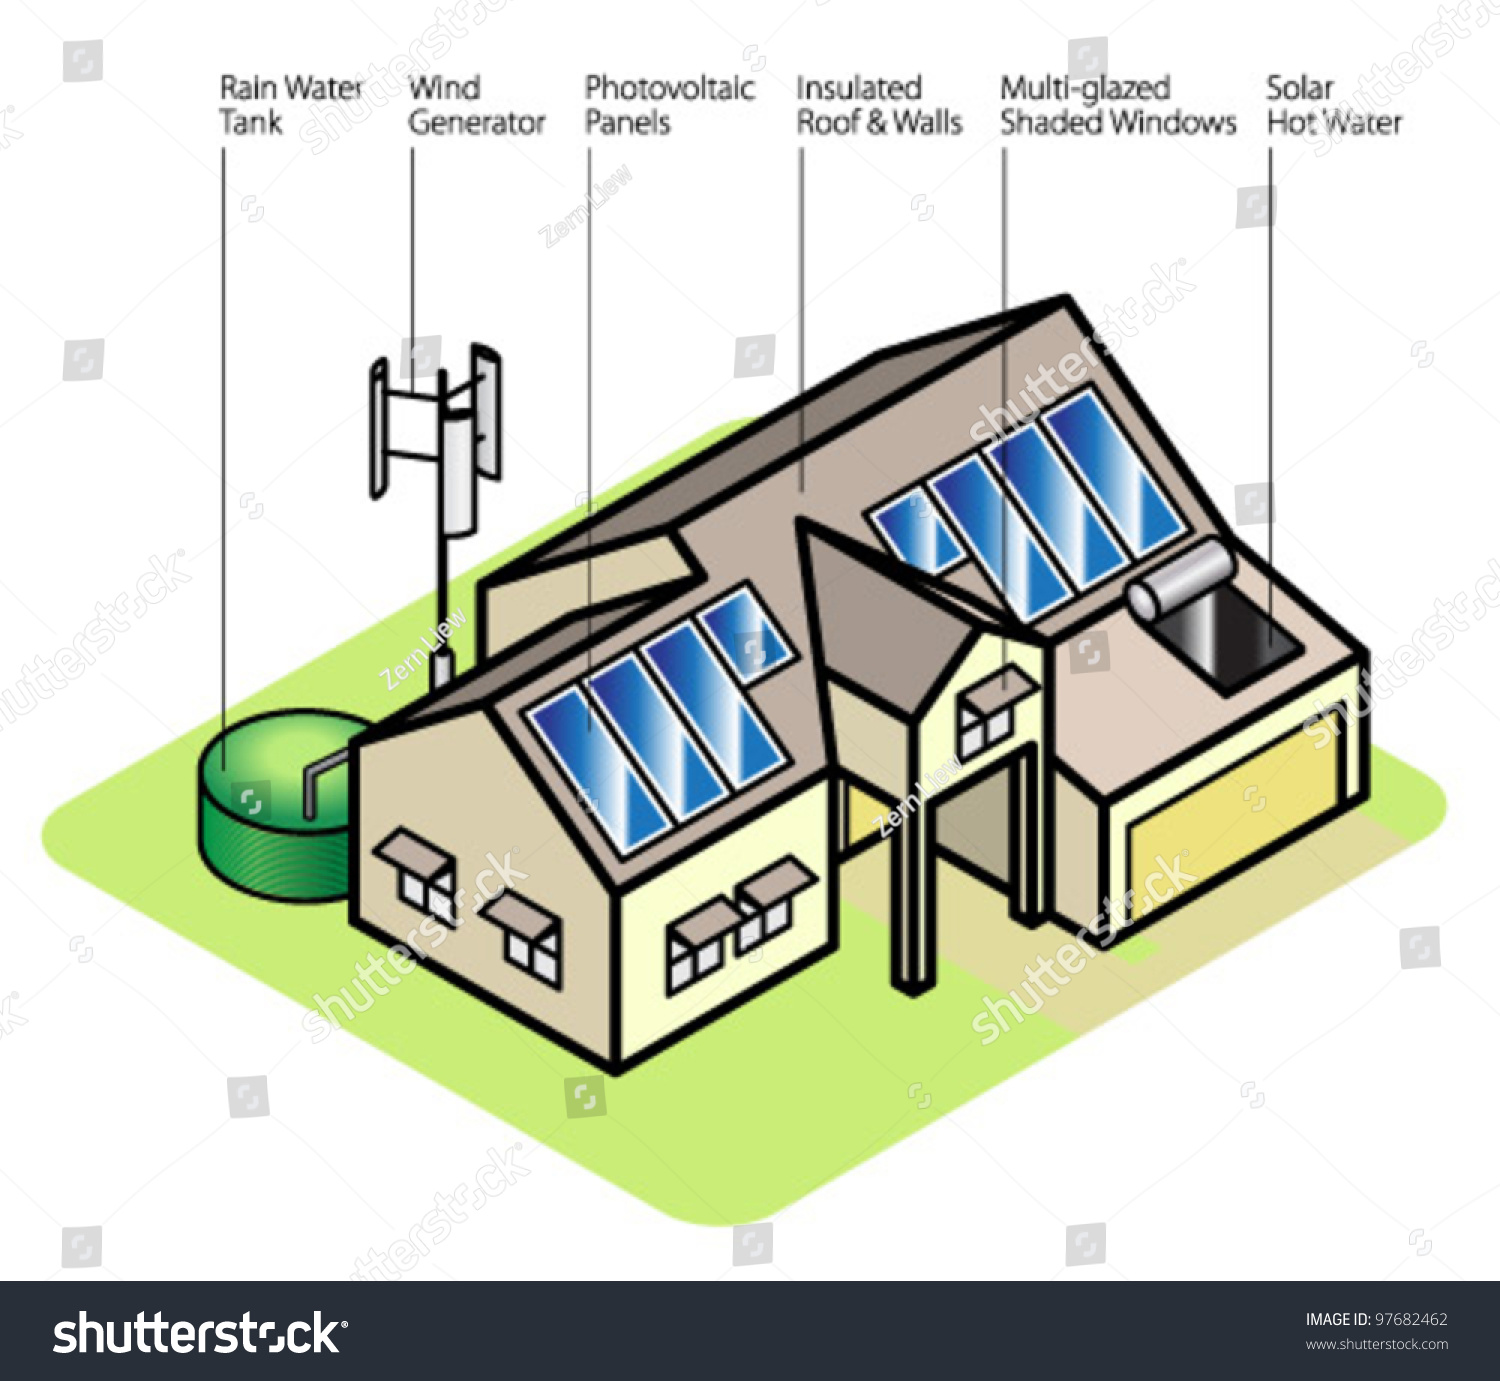 house insulation diagram strategic planning framework sustainable labelled elements arerainwater